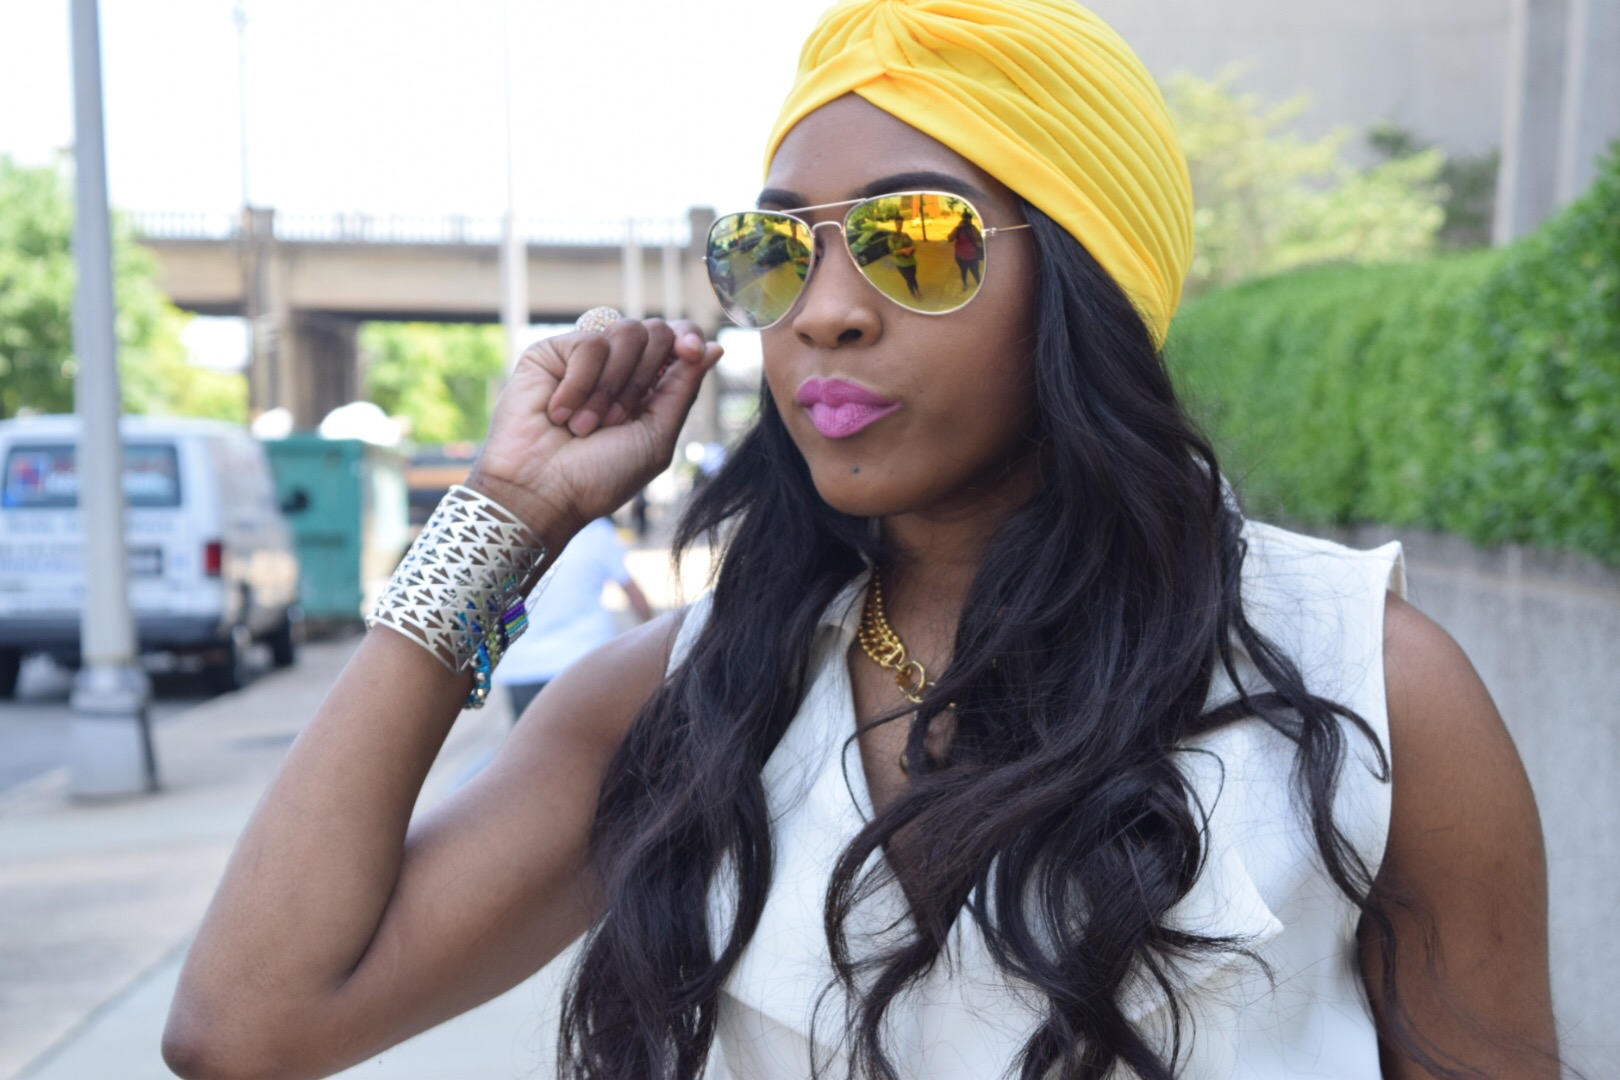 Style-Files-Forever 21-White-Longline Belted-Vest-Mossimo-Denim-Distressed--shorts-Justfab-Orange-heel-kati-sandals-yellow-turban-mirror-sunglasses-oohlalablog-20